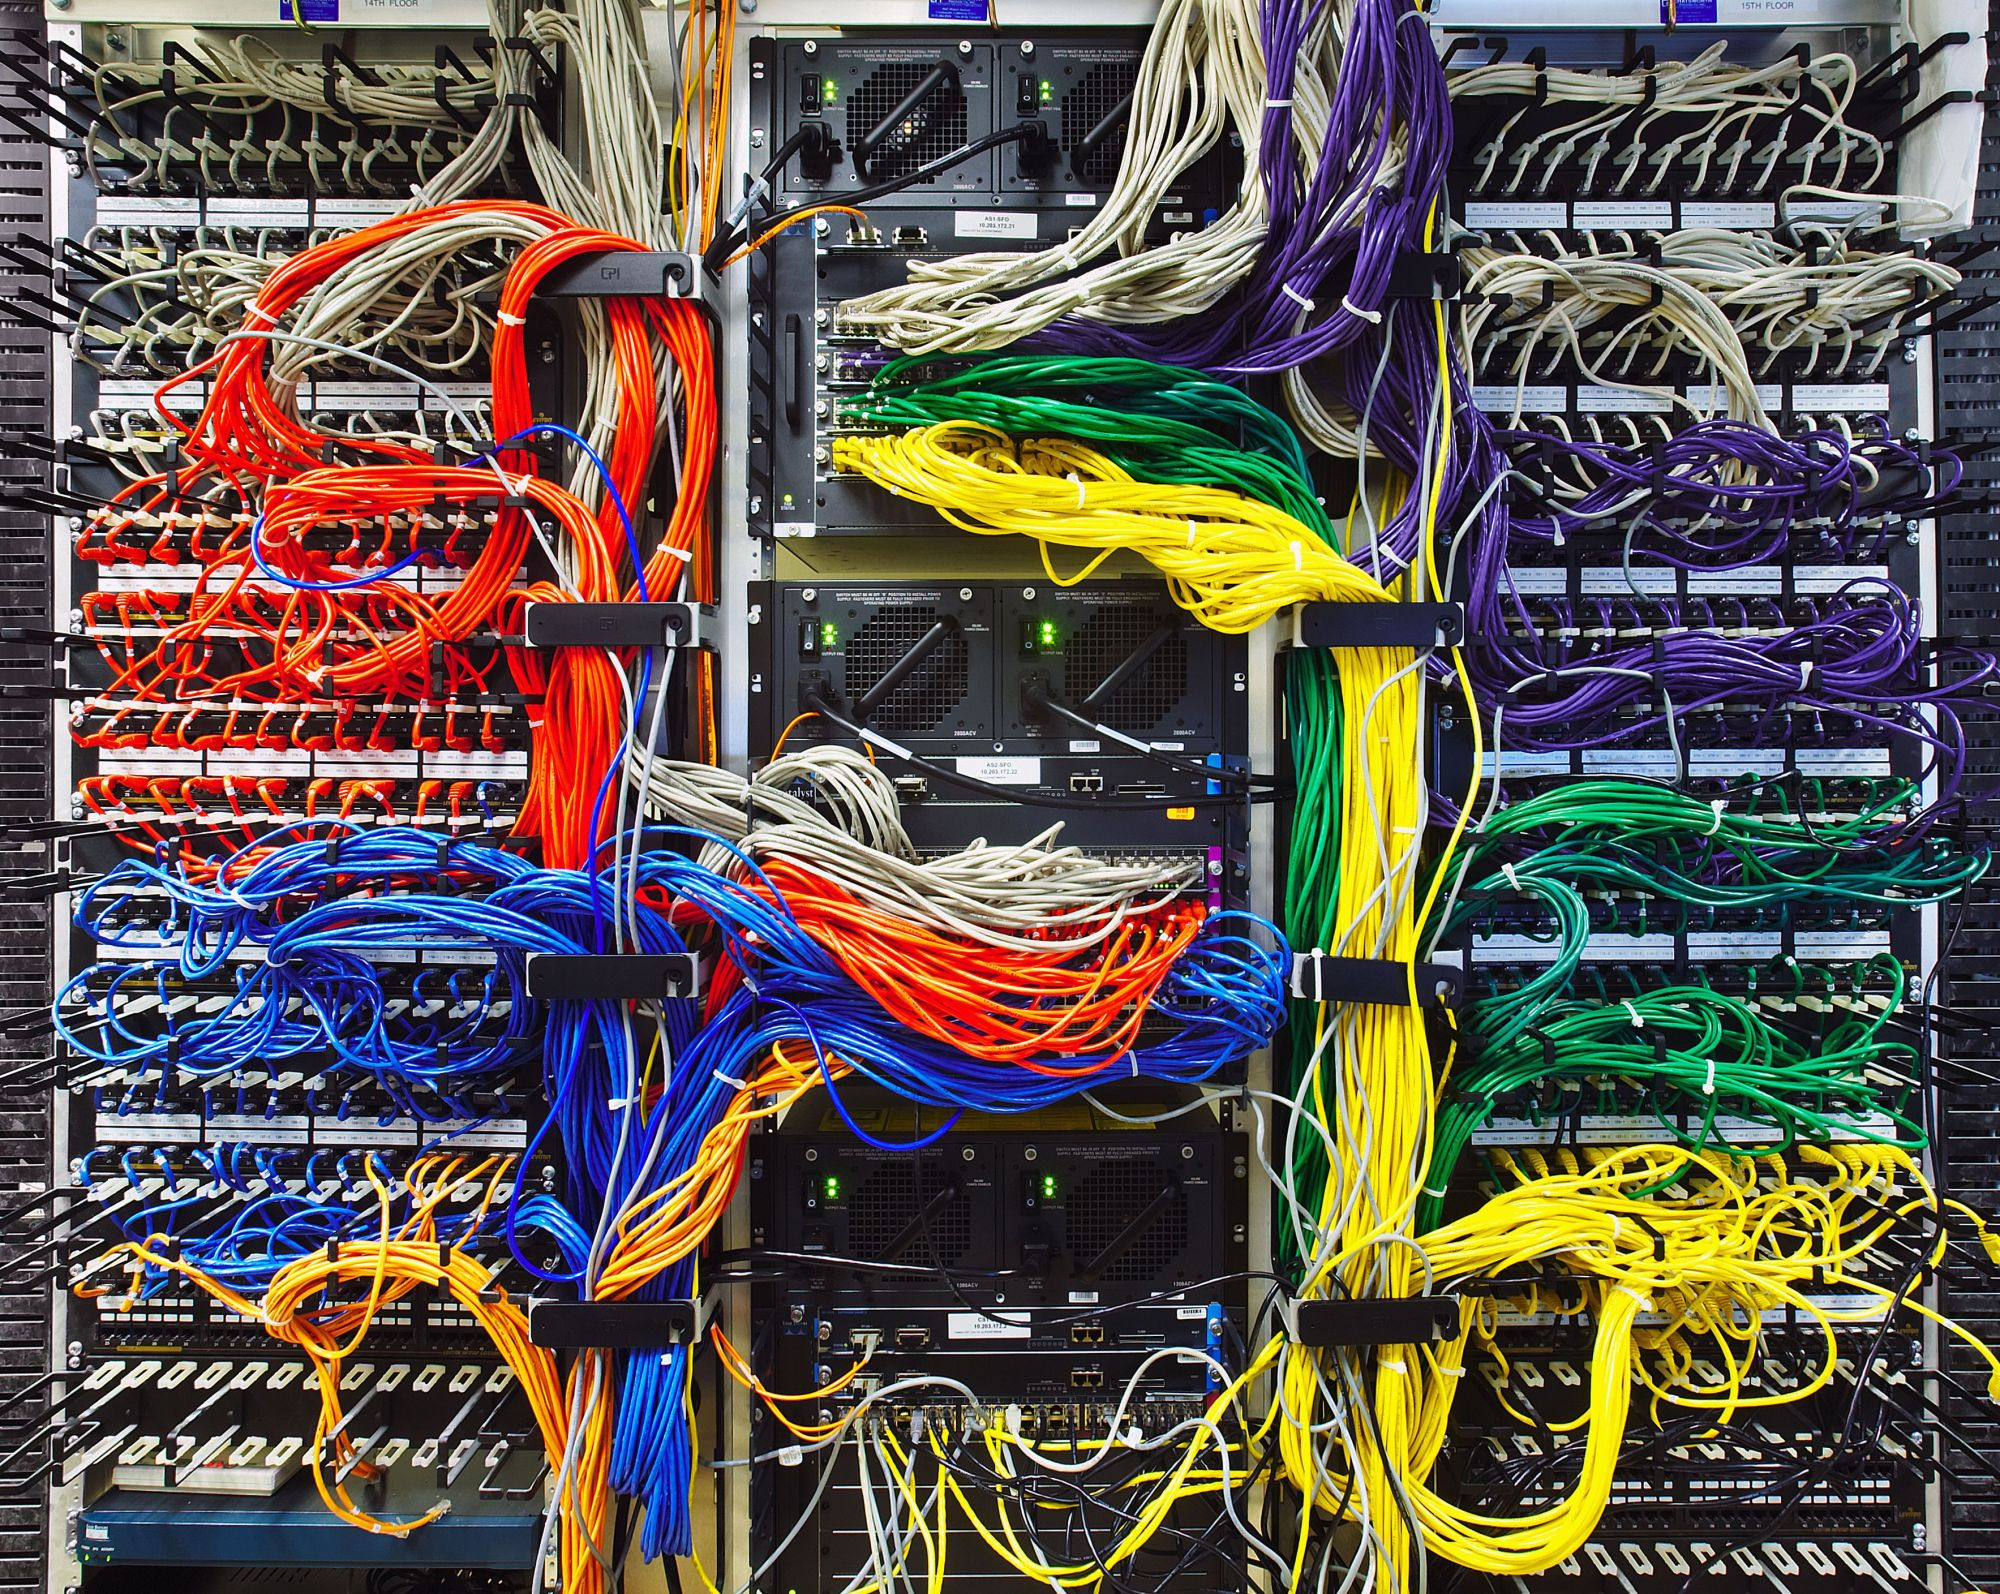 hight resolution of colorful computer wires in server room